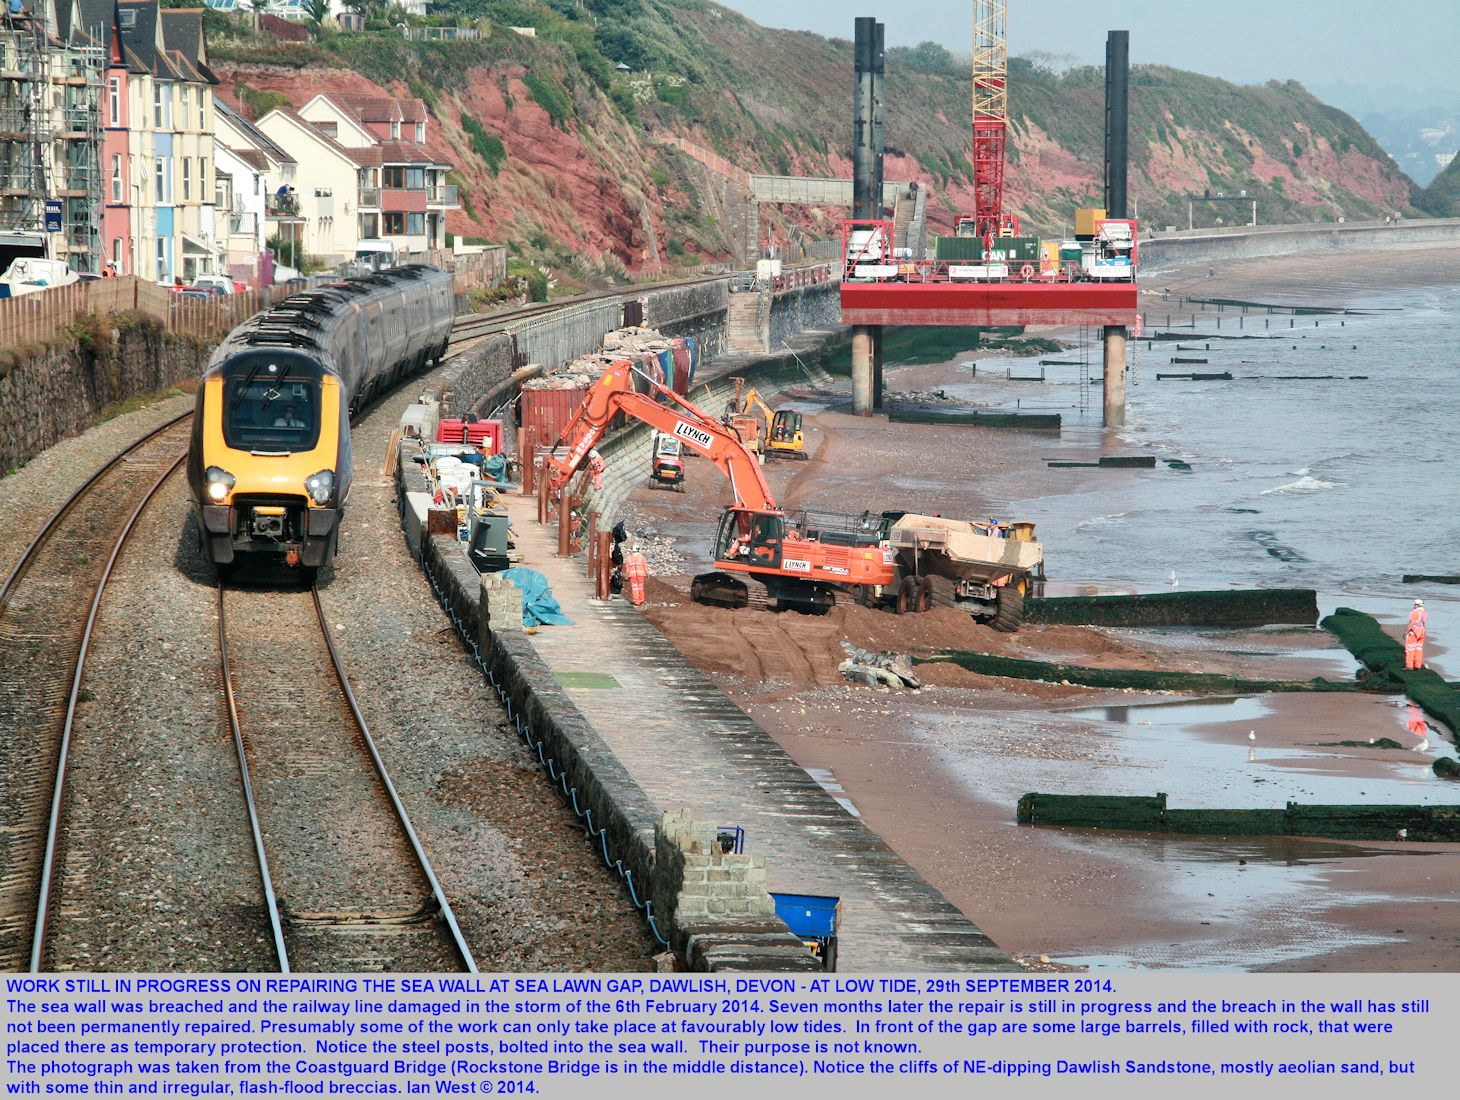 Repairs to the railway line at Sea Lawn Gap, Dawlish, Devon, as seen, taking place at low tide, on the 29th September 2014